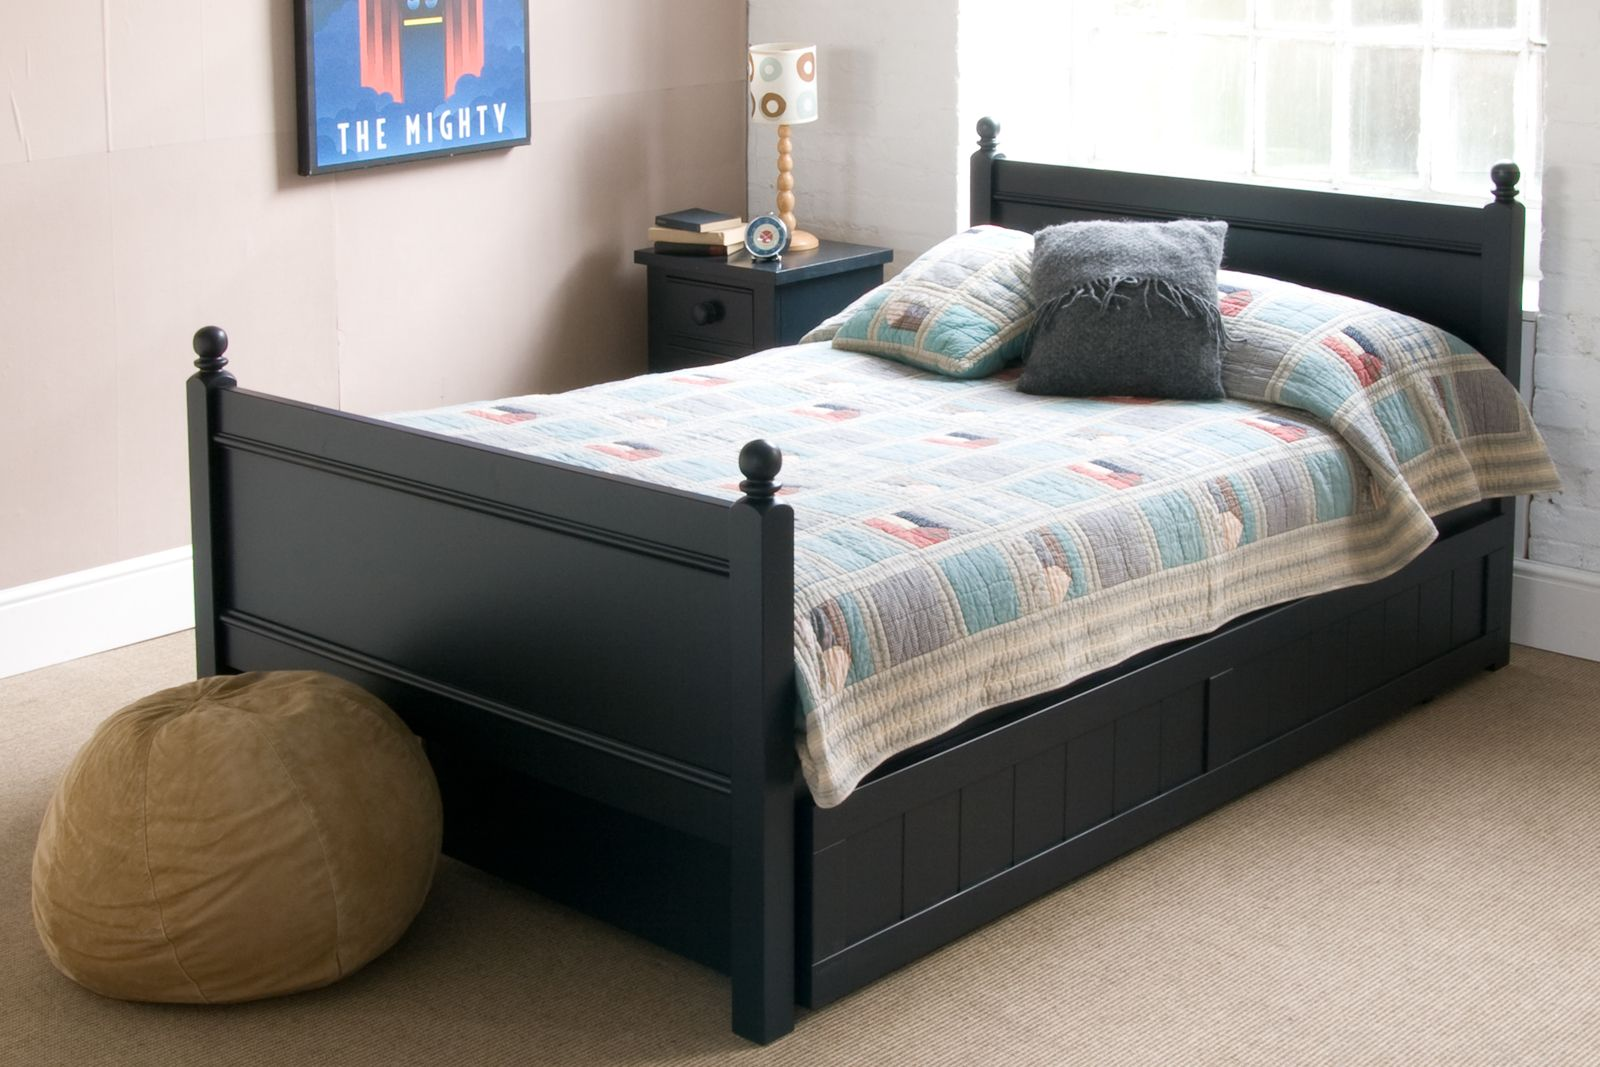 4ft Double Bed Size Fargo Small Double Bed 4ft With Storage Trundle